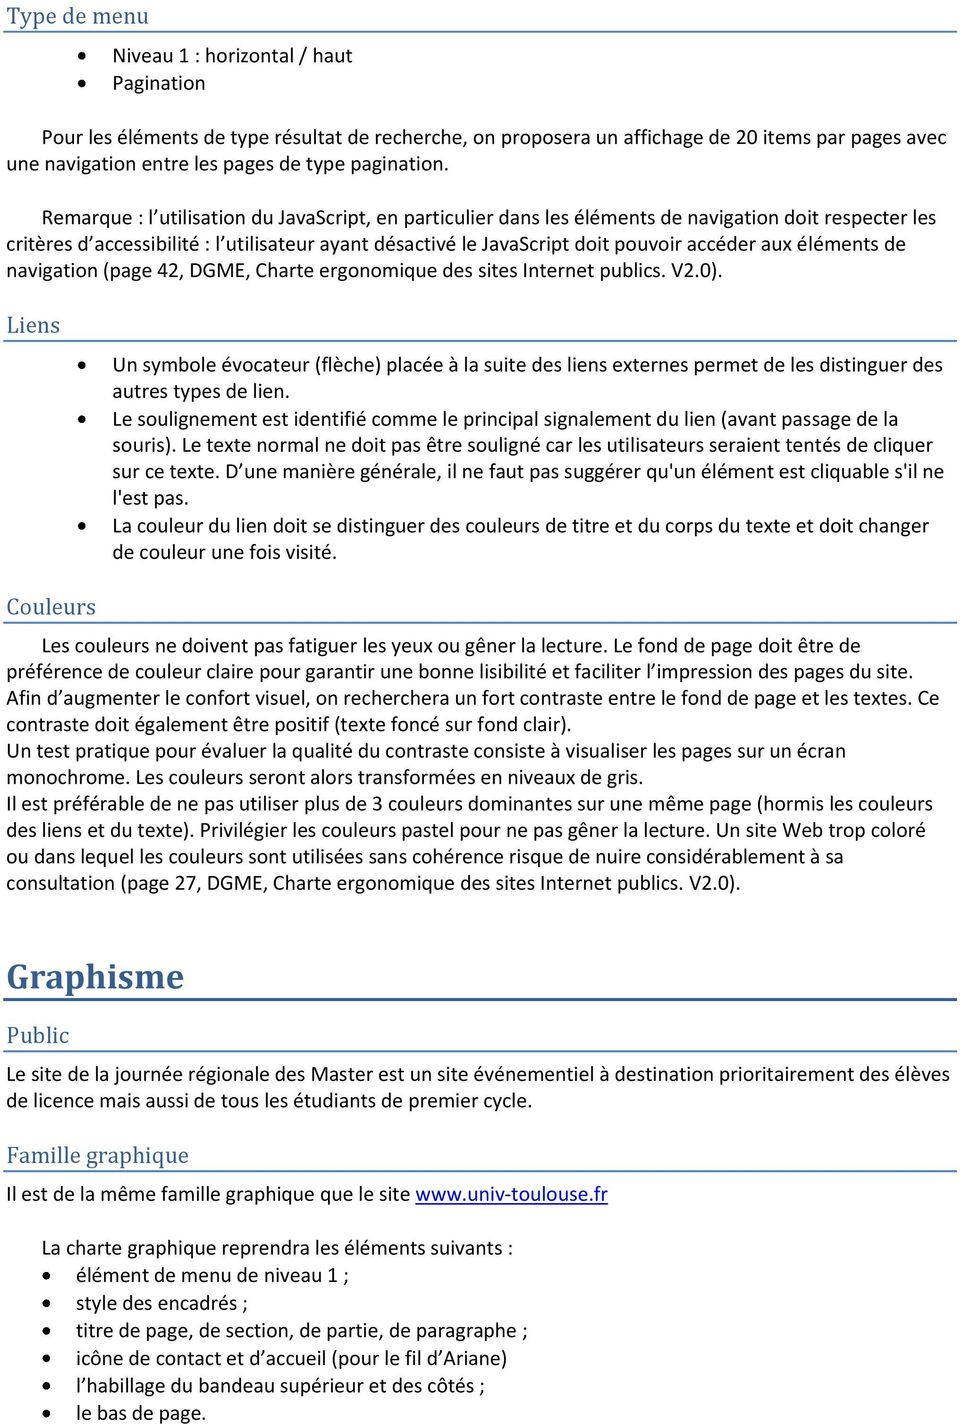 case 8 11 societe generale grade 40 40 Latest breaking news and analysis on societe generale adr (scgly.